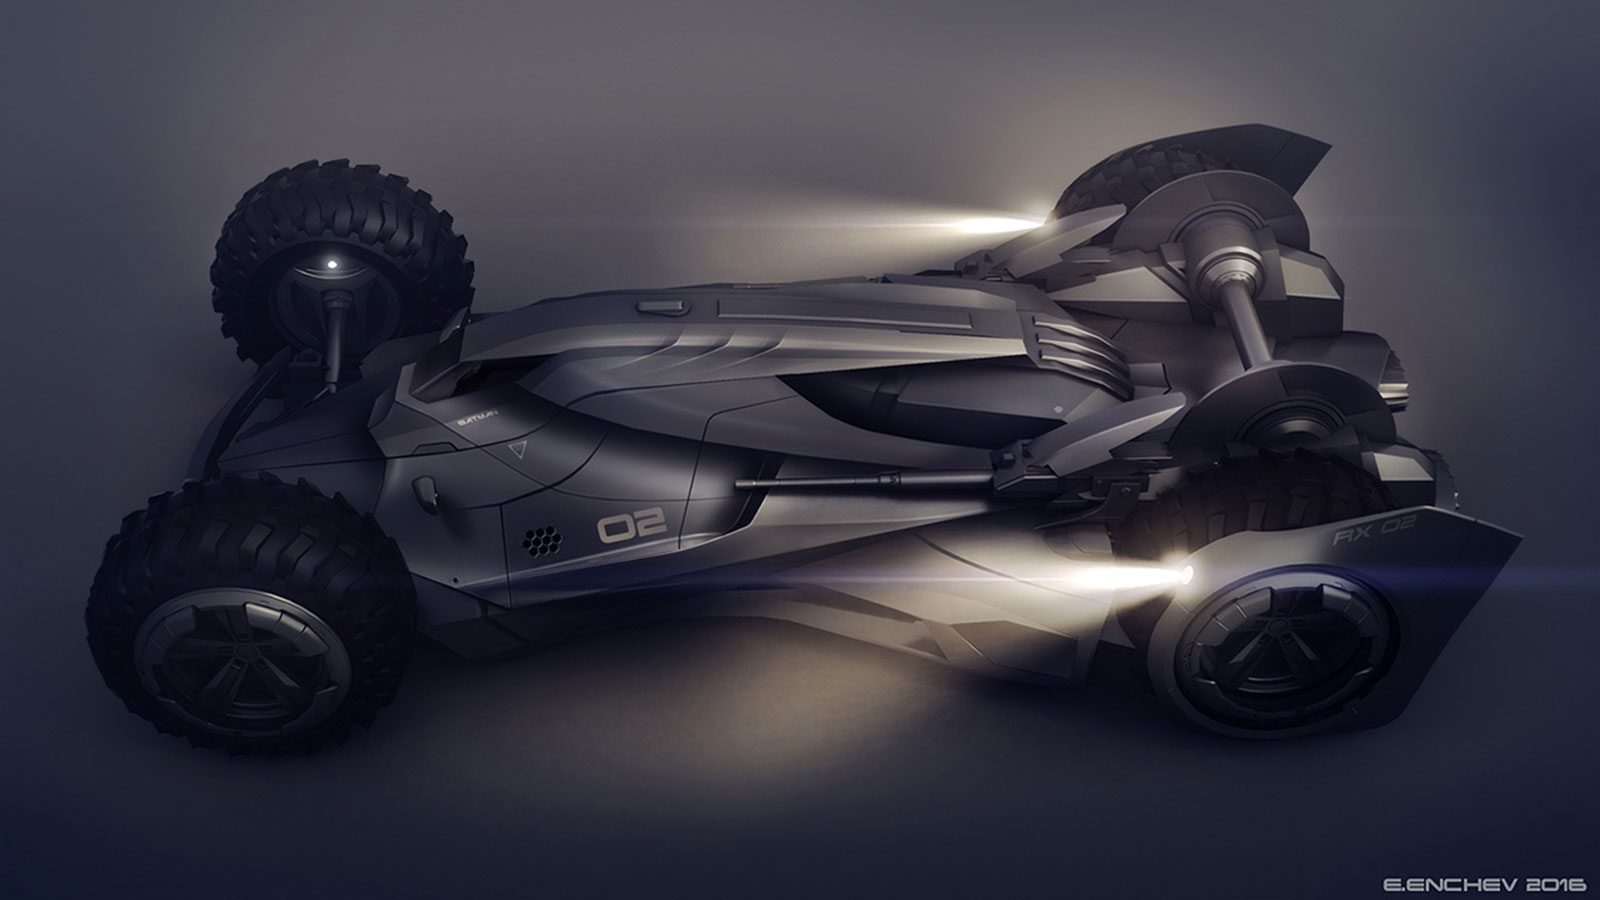 Batmobile-Concept-By-Encho-Enchev-4